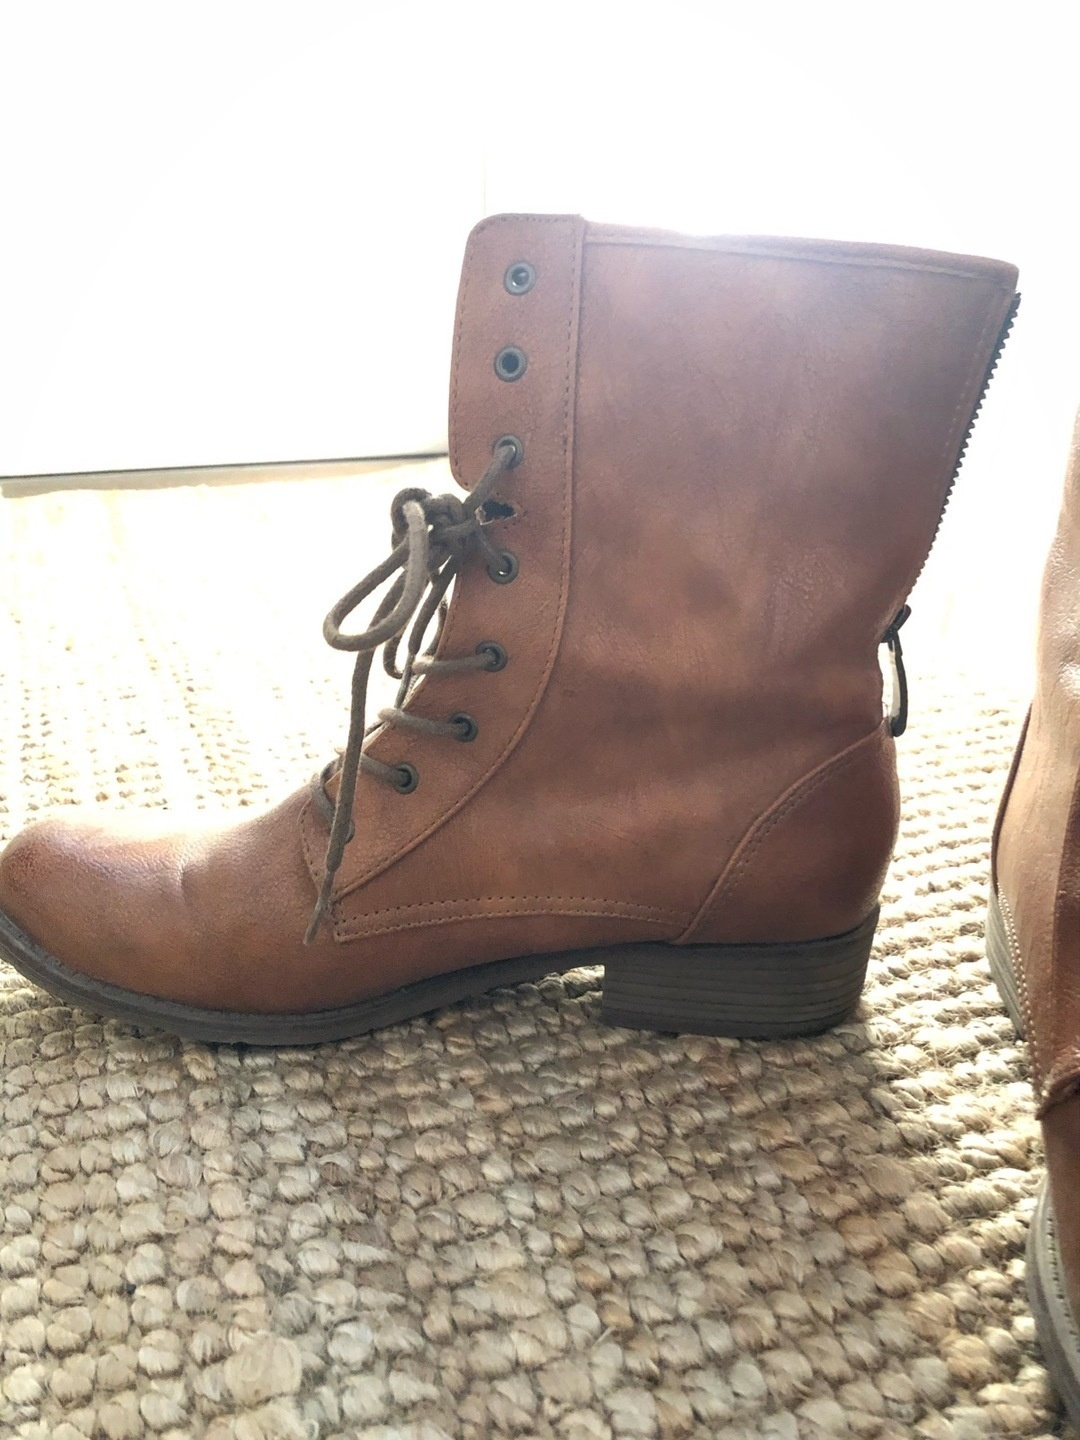 Women's boots - MUSTANG SHOES photo 3